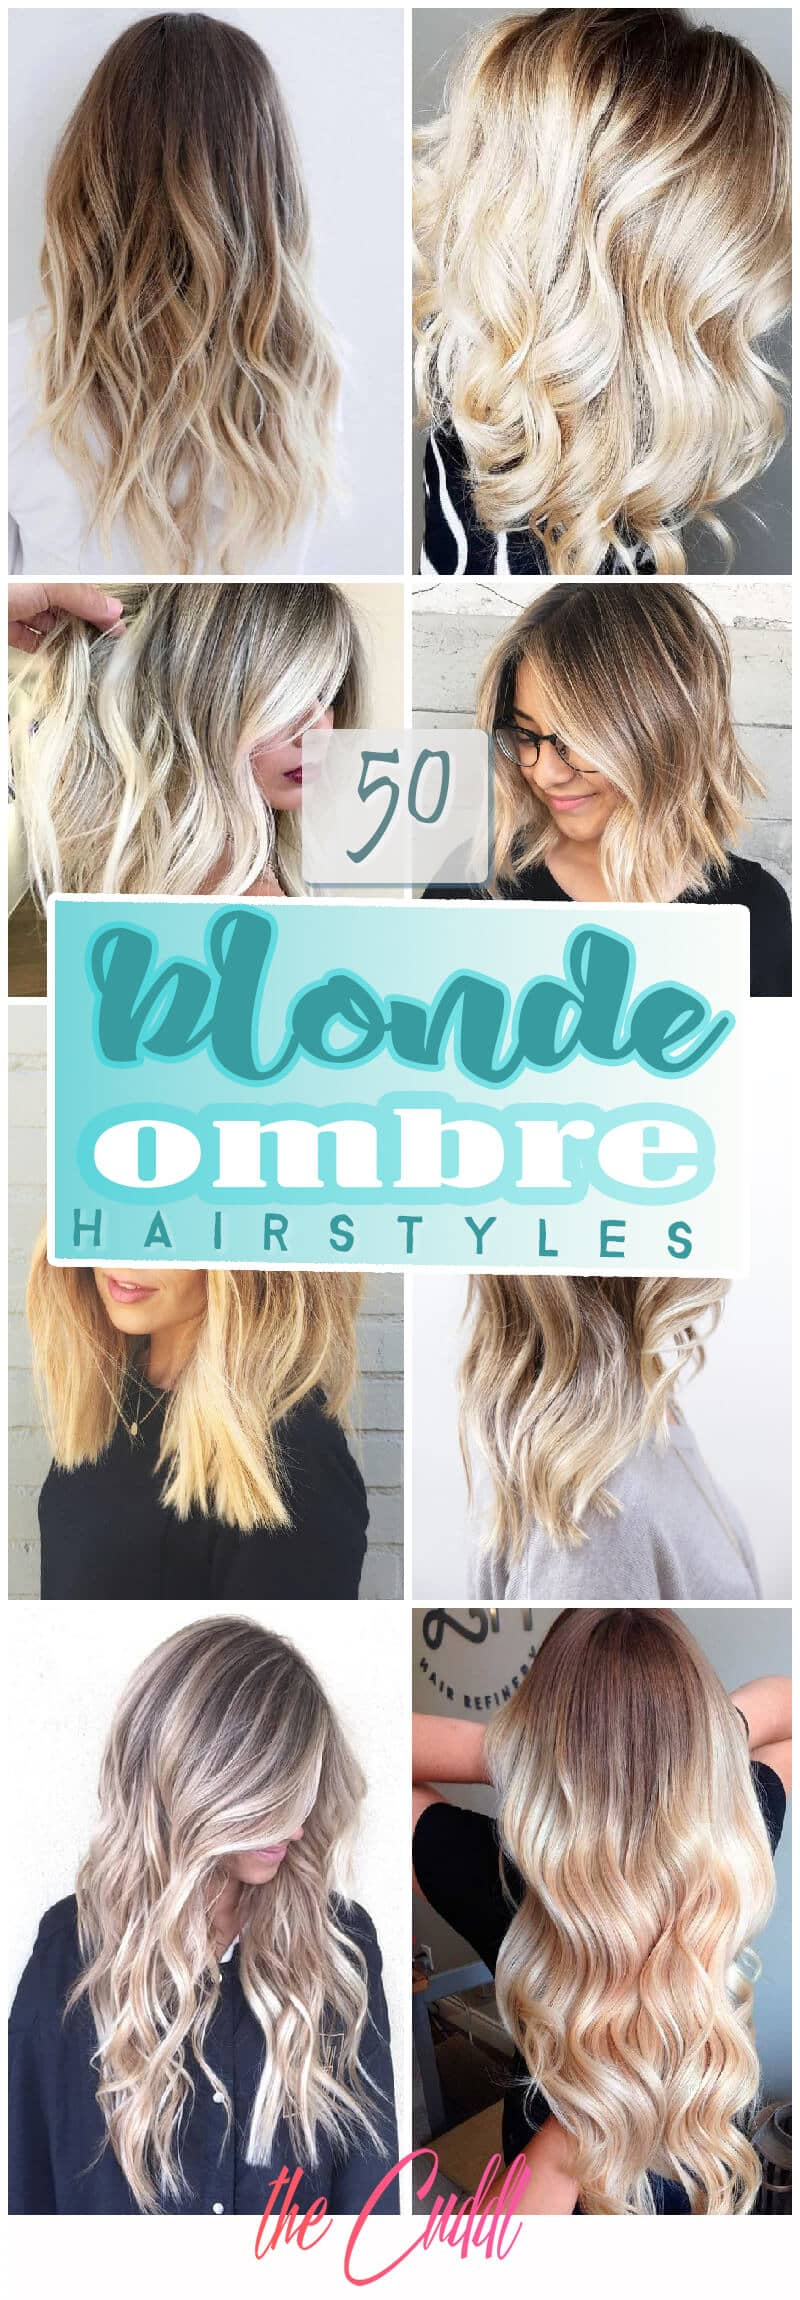 Proofs that anyone can pull off the blond ombre hairstyle 50 proofs that anyone can pull off the blond ombre hairstyle solutioingenieria Image collections